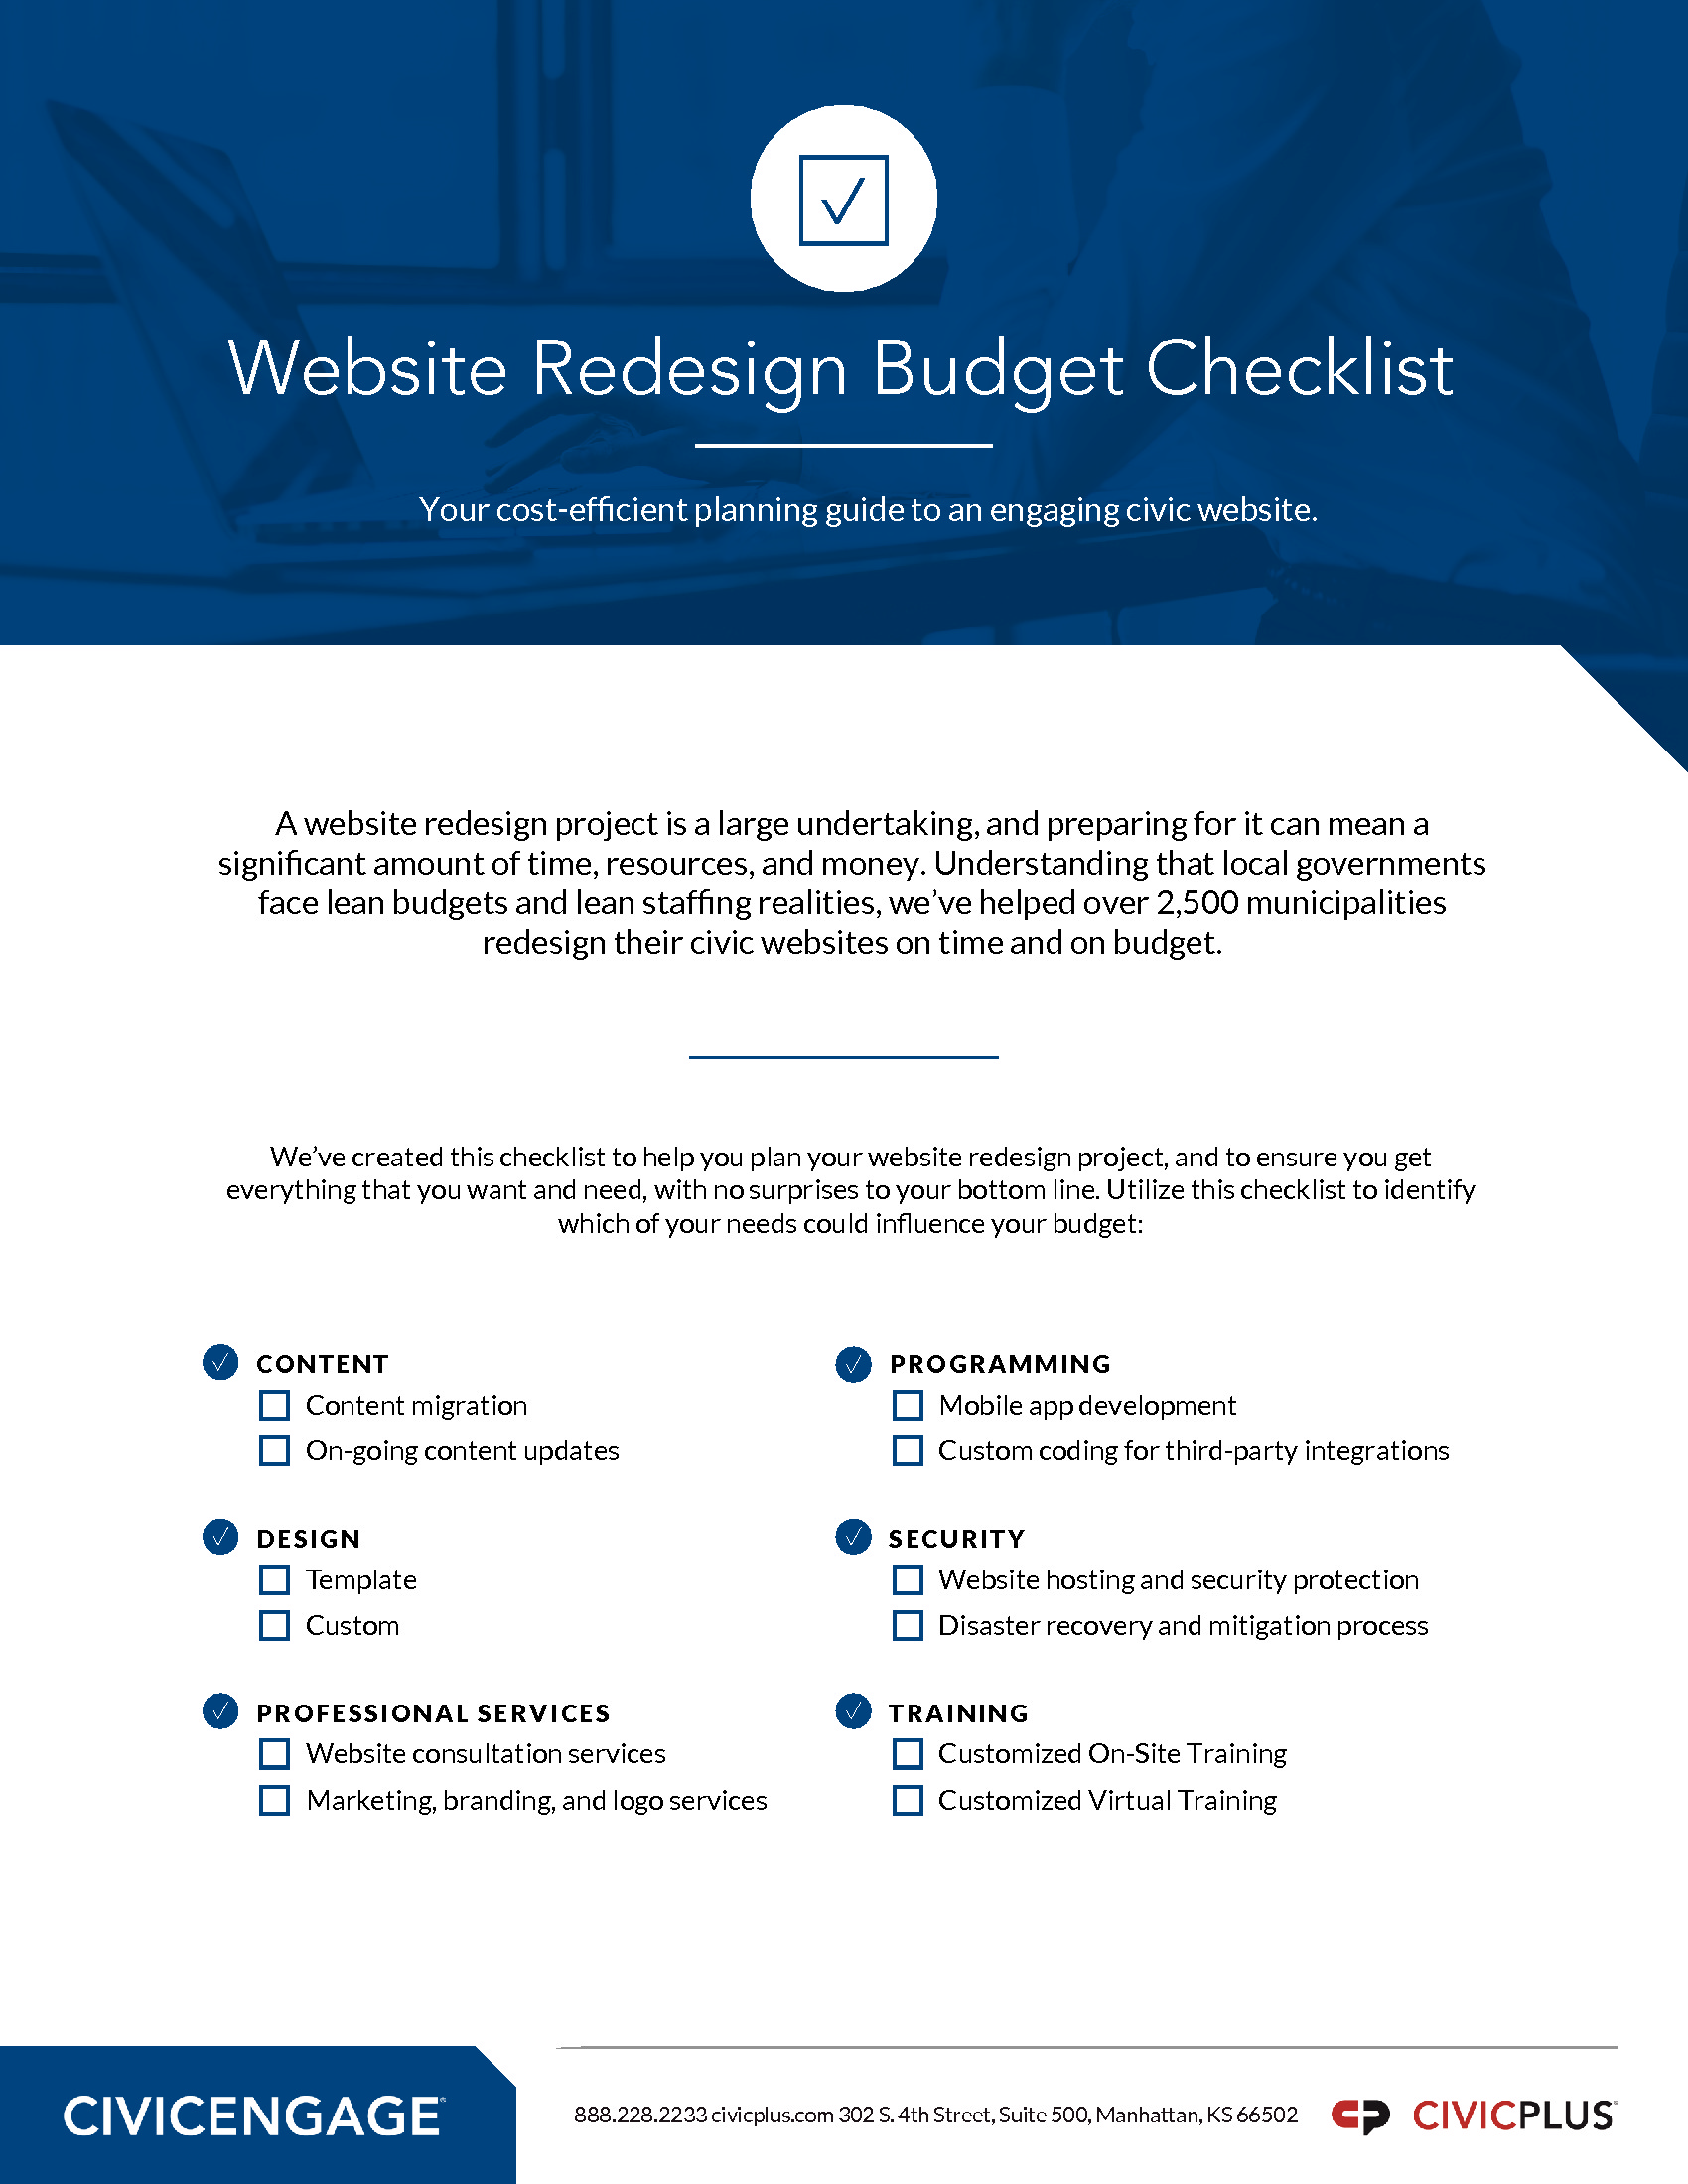 GOV - CivicPlus - 2018 Management Channel - Website Redesign Planning Toolkit